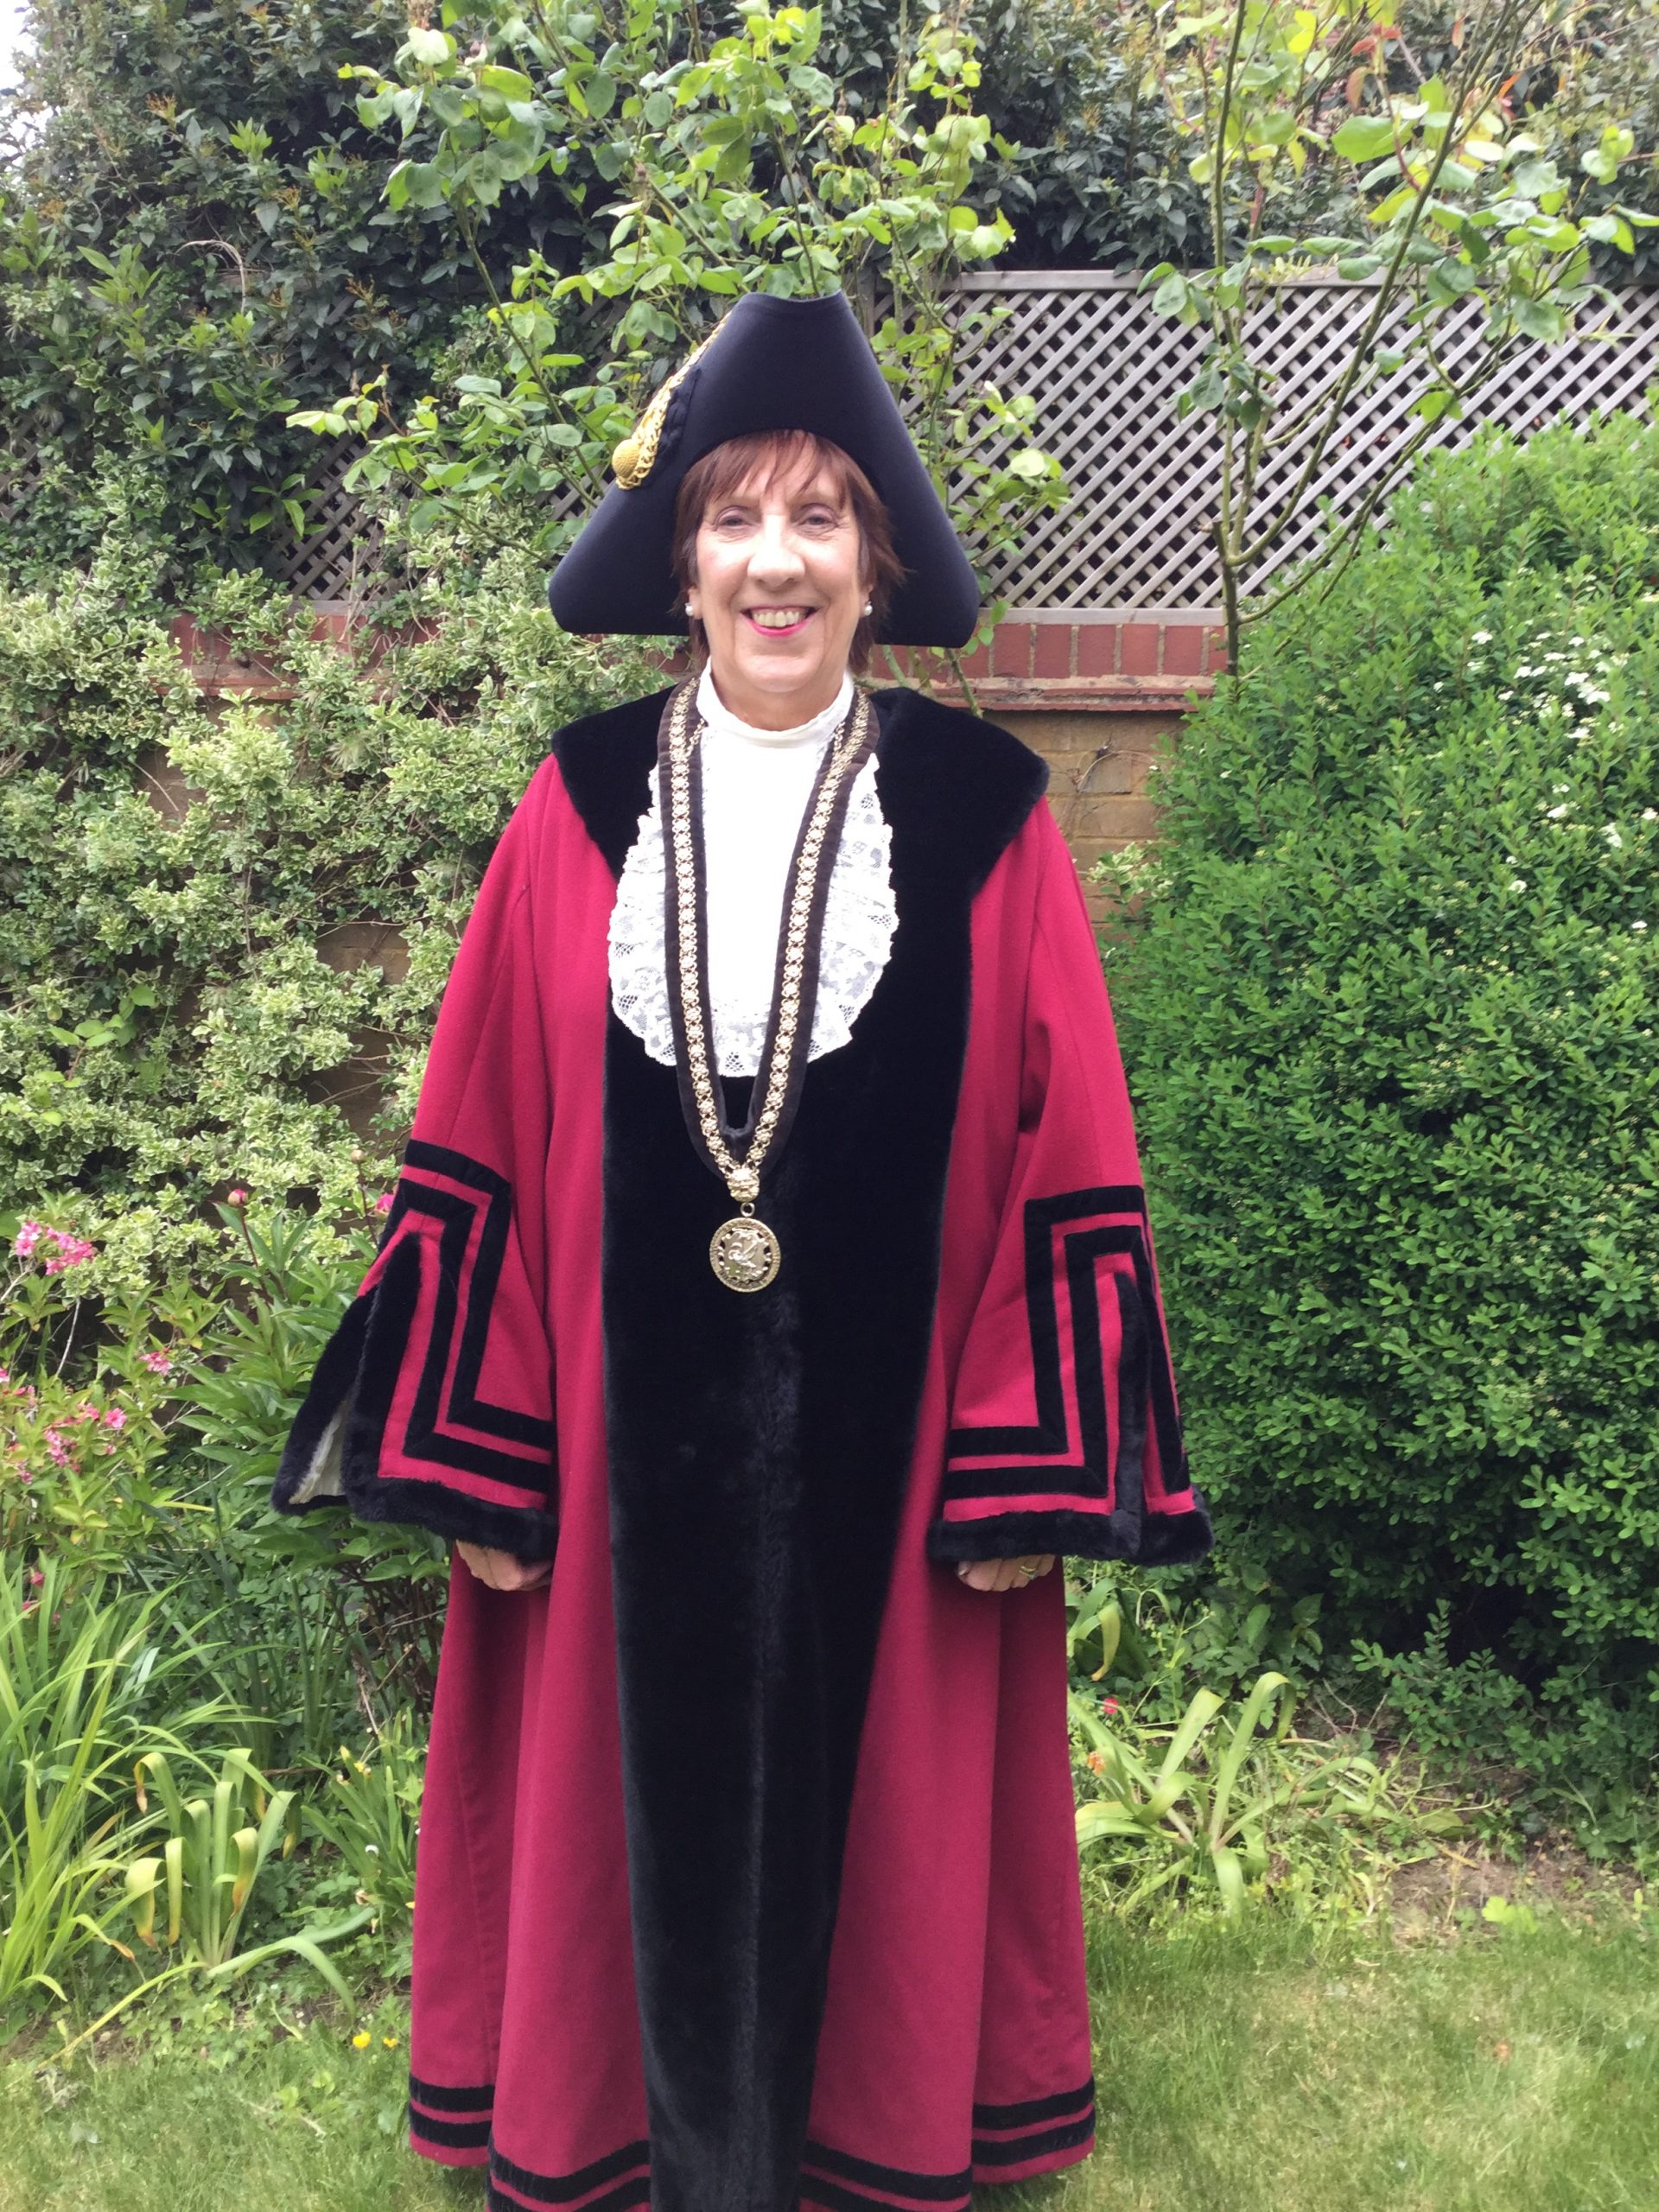 Mayor of Buckingham, Cllr. Geraldine Collins